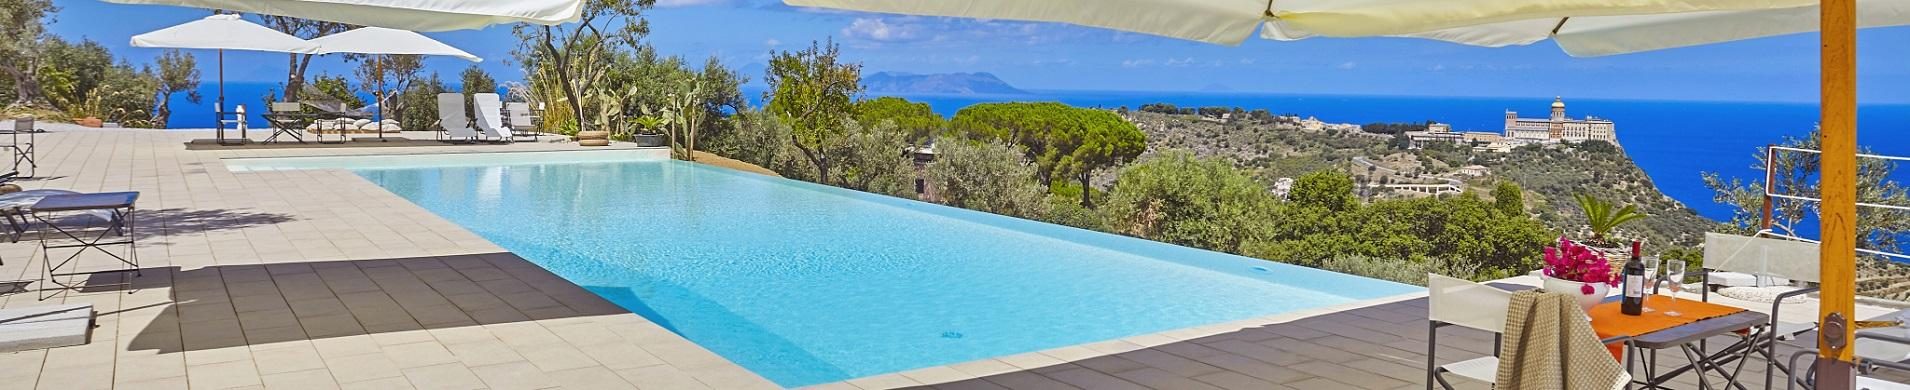 Family holiday in Sicily, villas for families